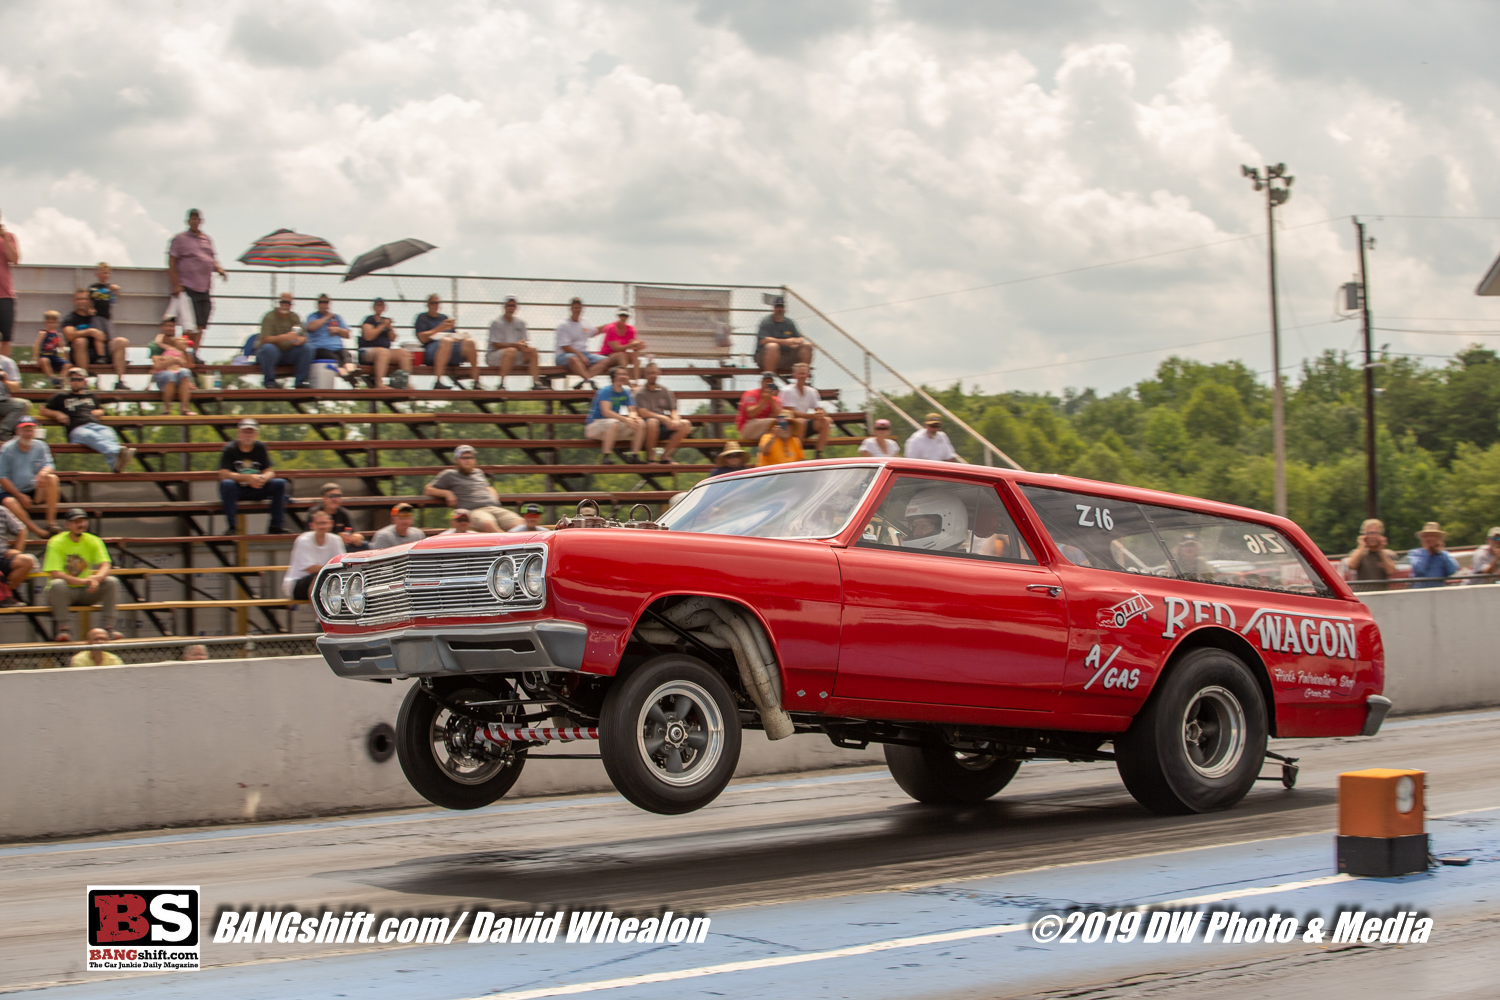 Southeast Gassers Action From Piedmont Dragway! Killer Cars, Wheelies, Period Correct Action!